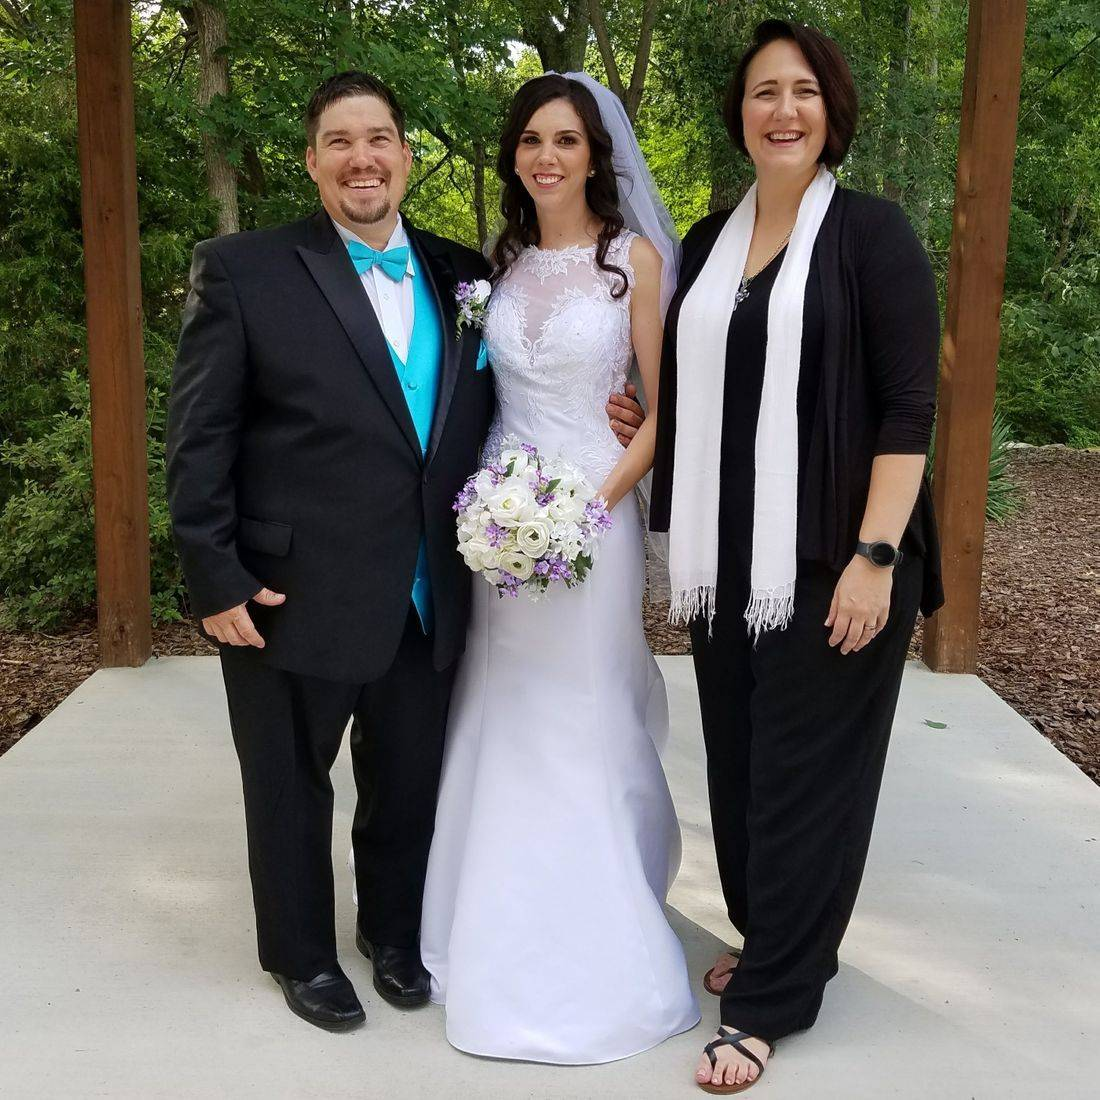 wedding, minister, vineyard, albemarle, stanly county, officiant